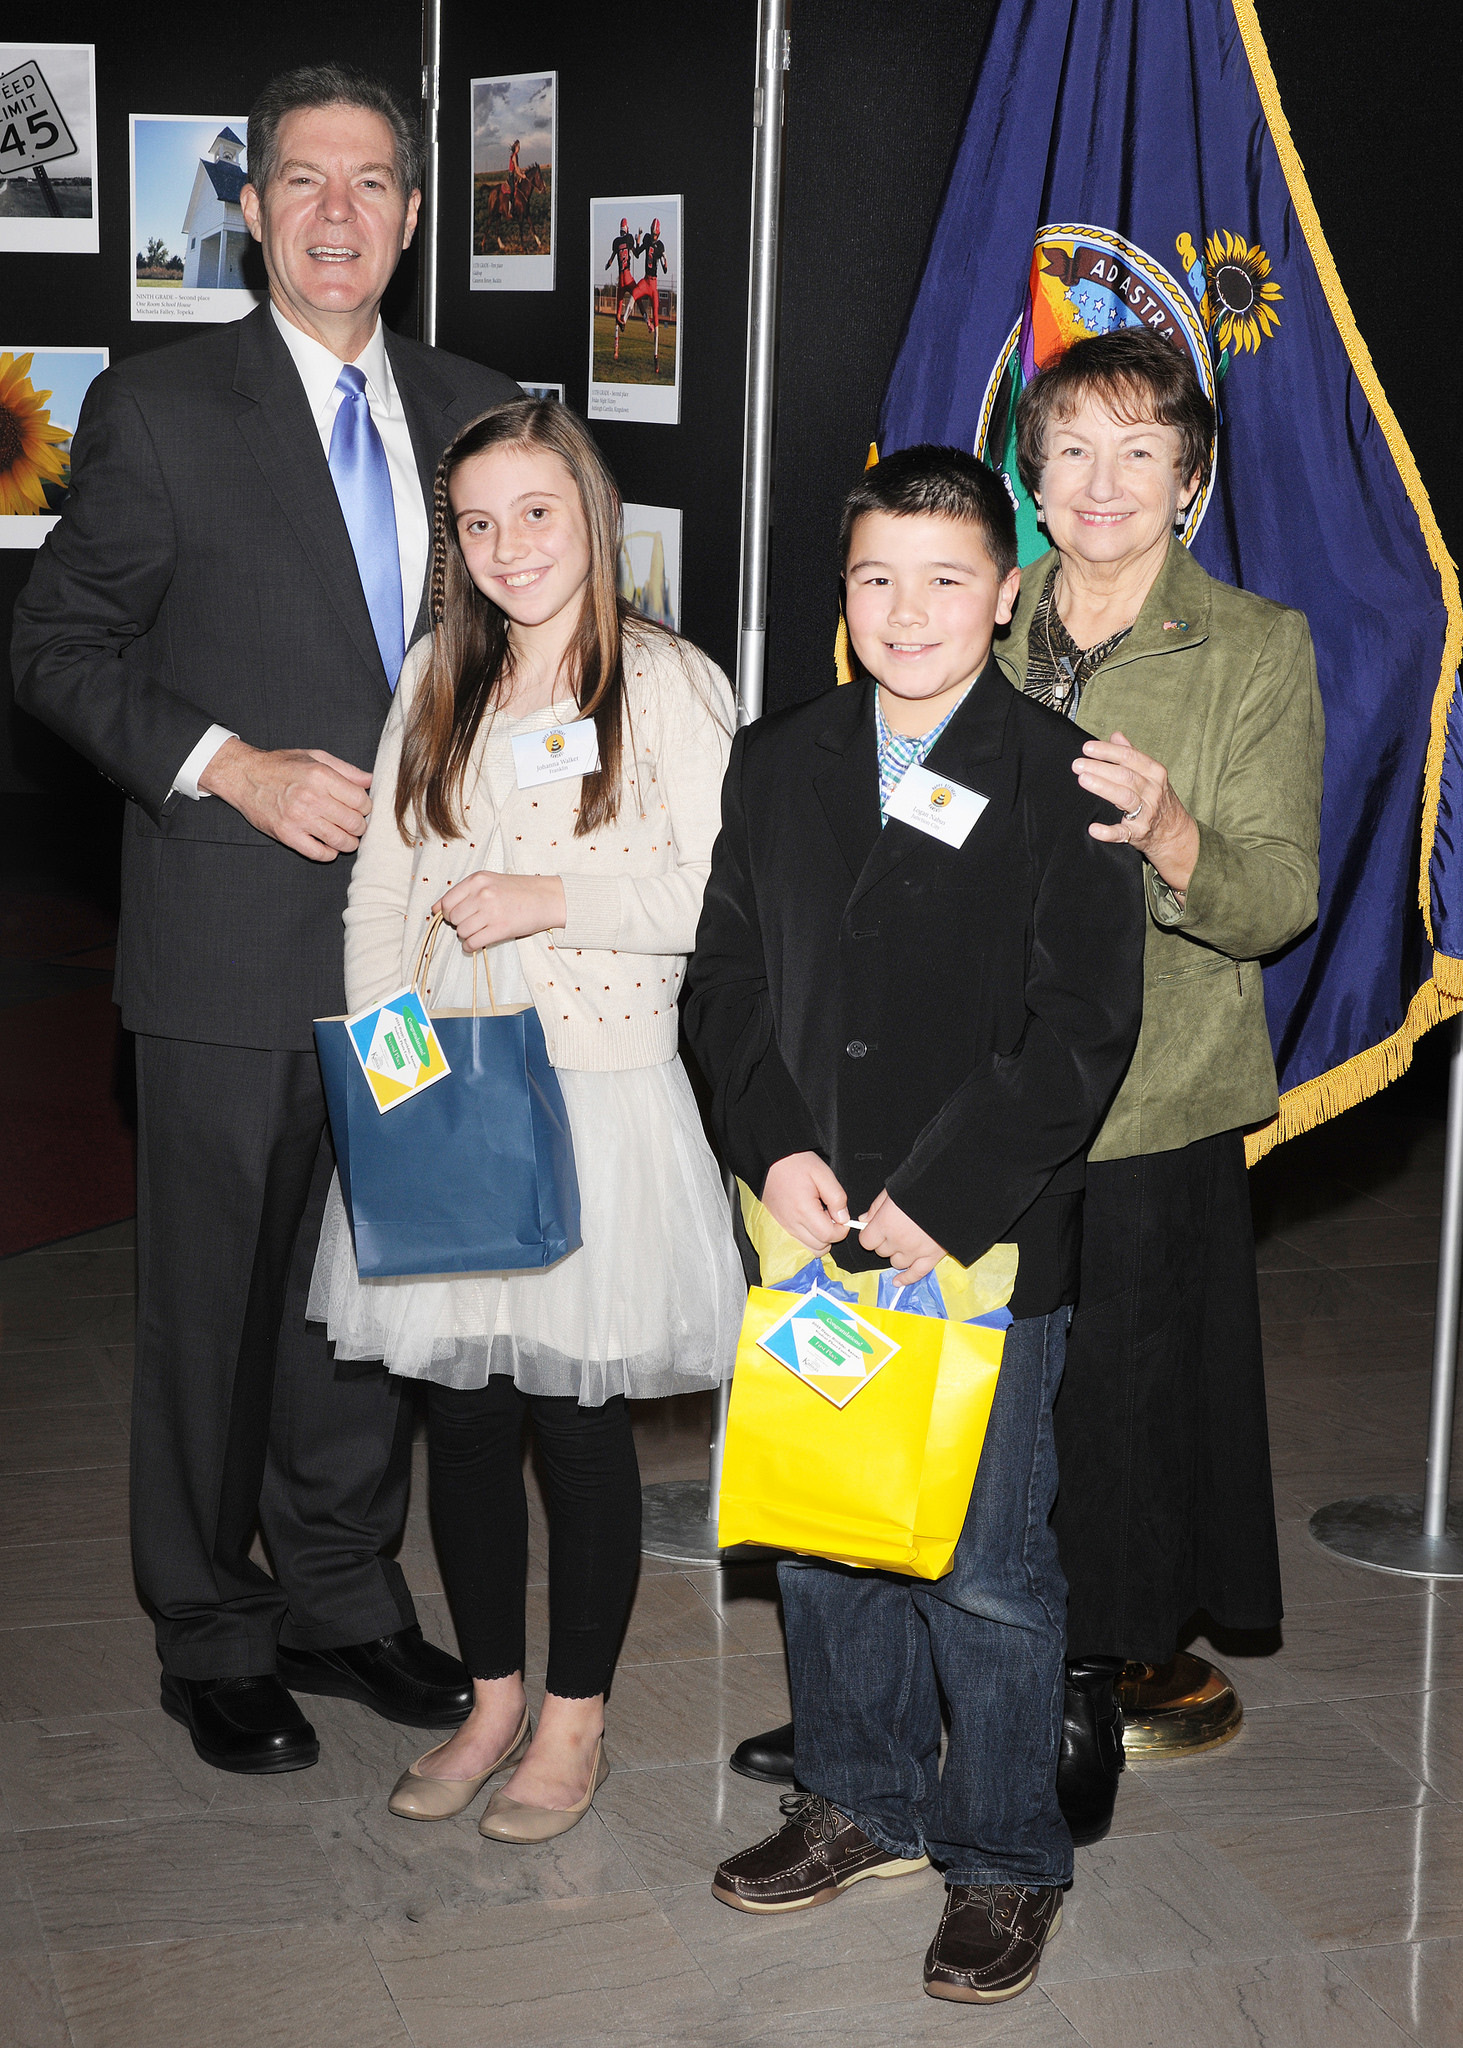 Fifth grade winners Johanna Walker and Logan Nabus with Governor Sam Brownback and Marearl Denning